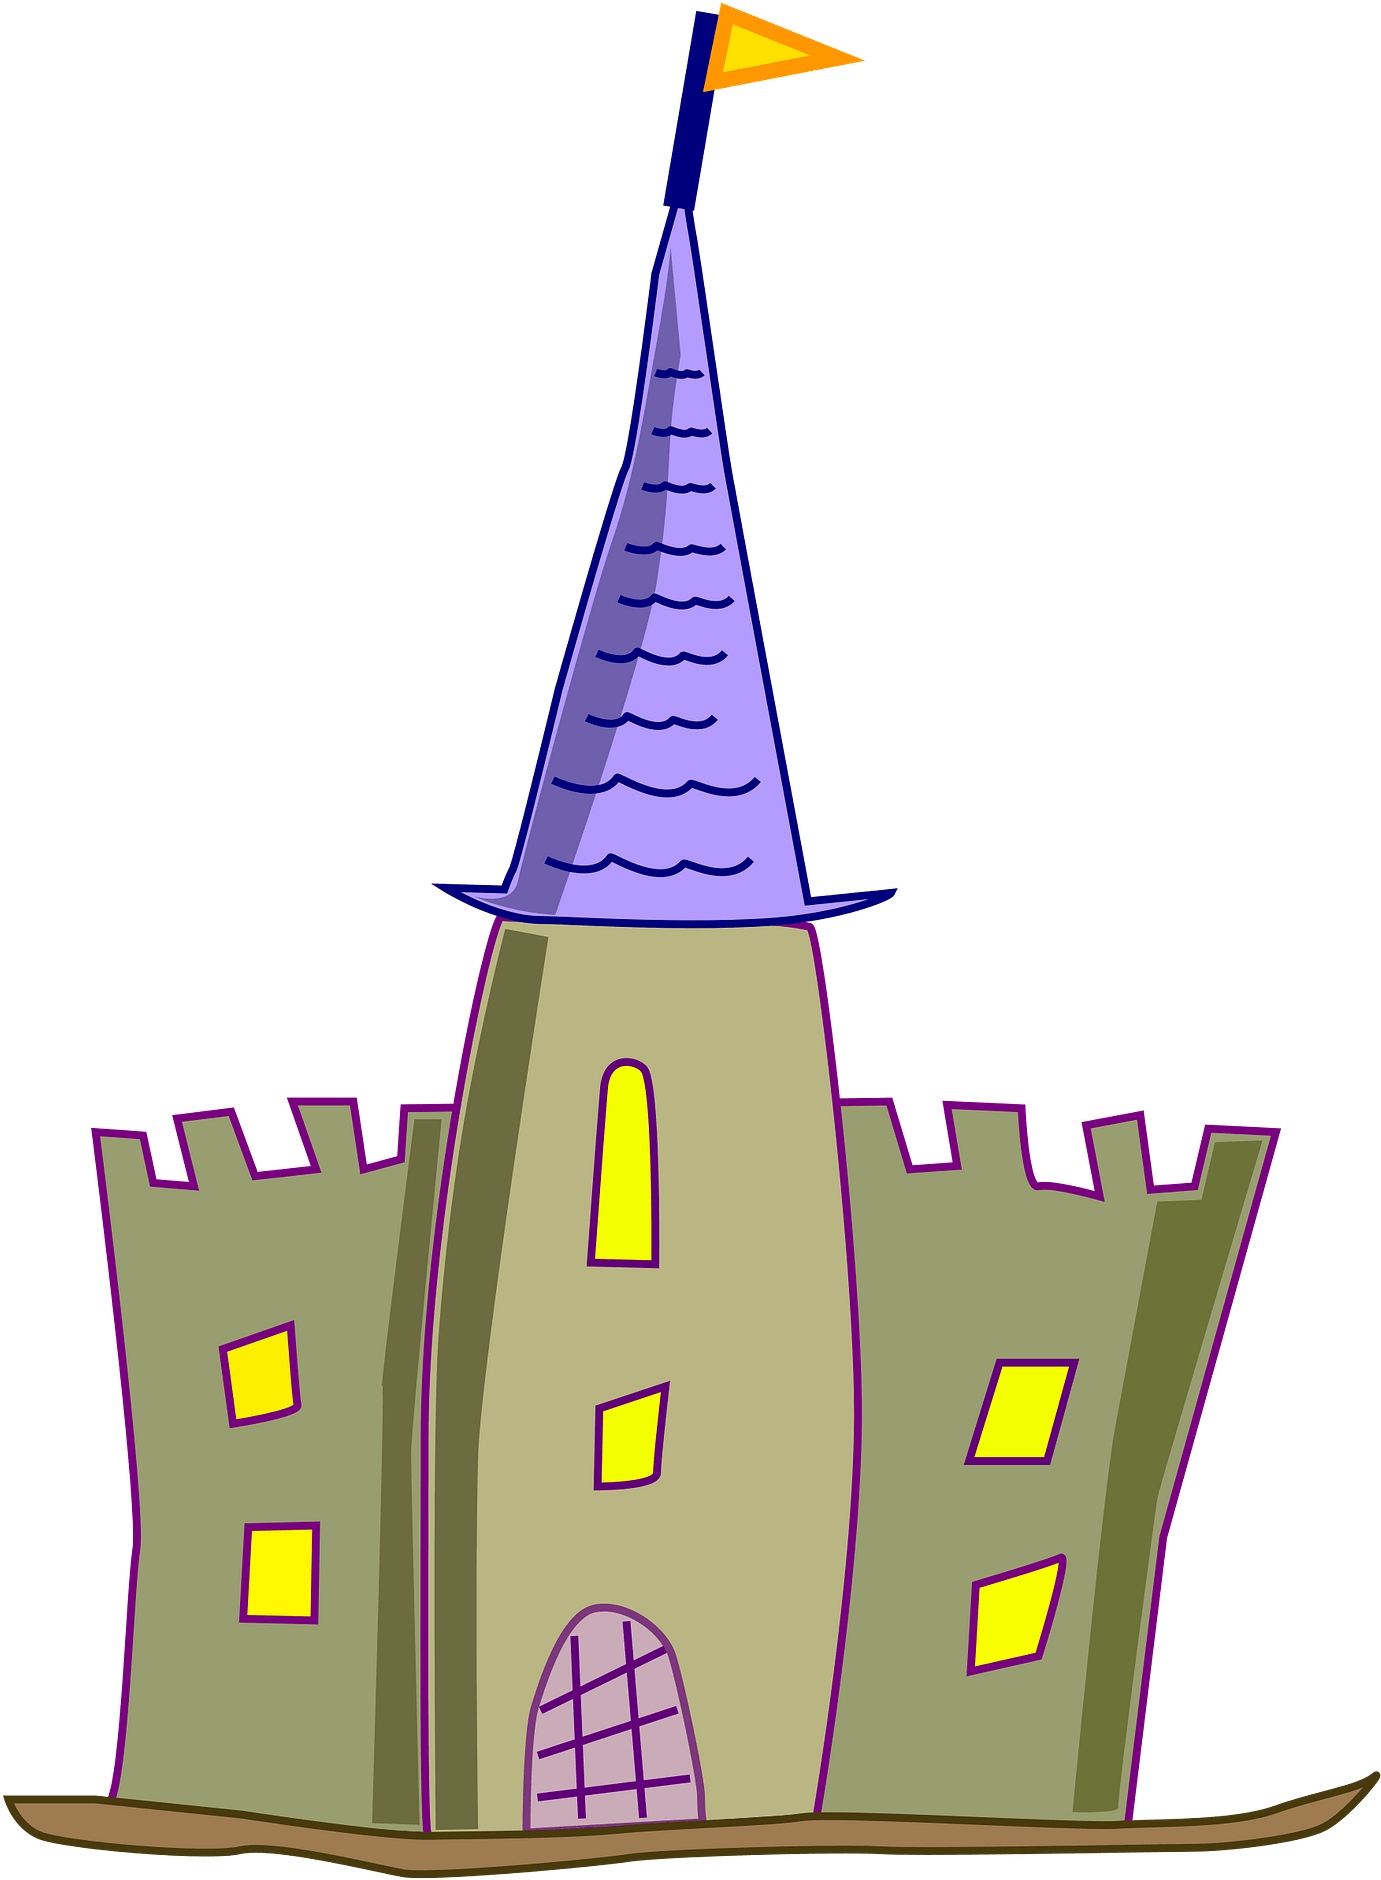 Castle Free To Use Cliparts - Castle Cartoon No Background